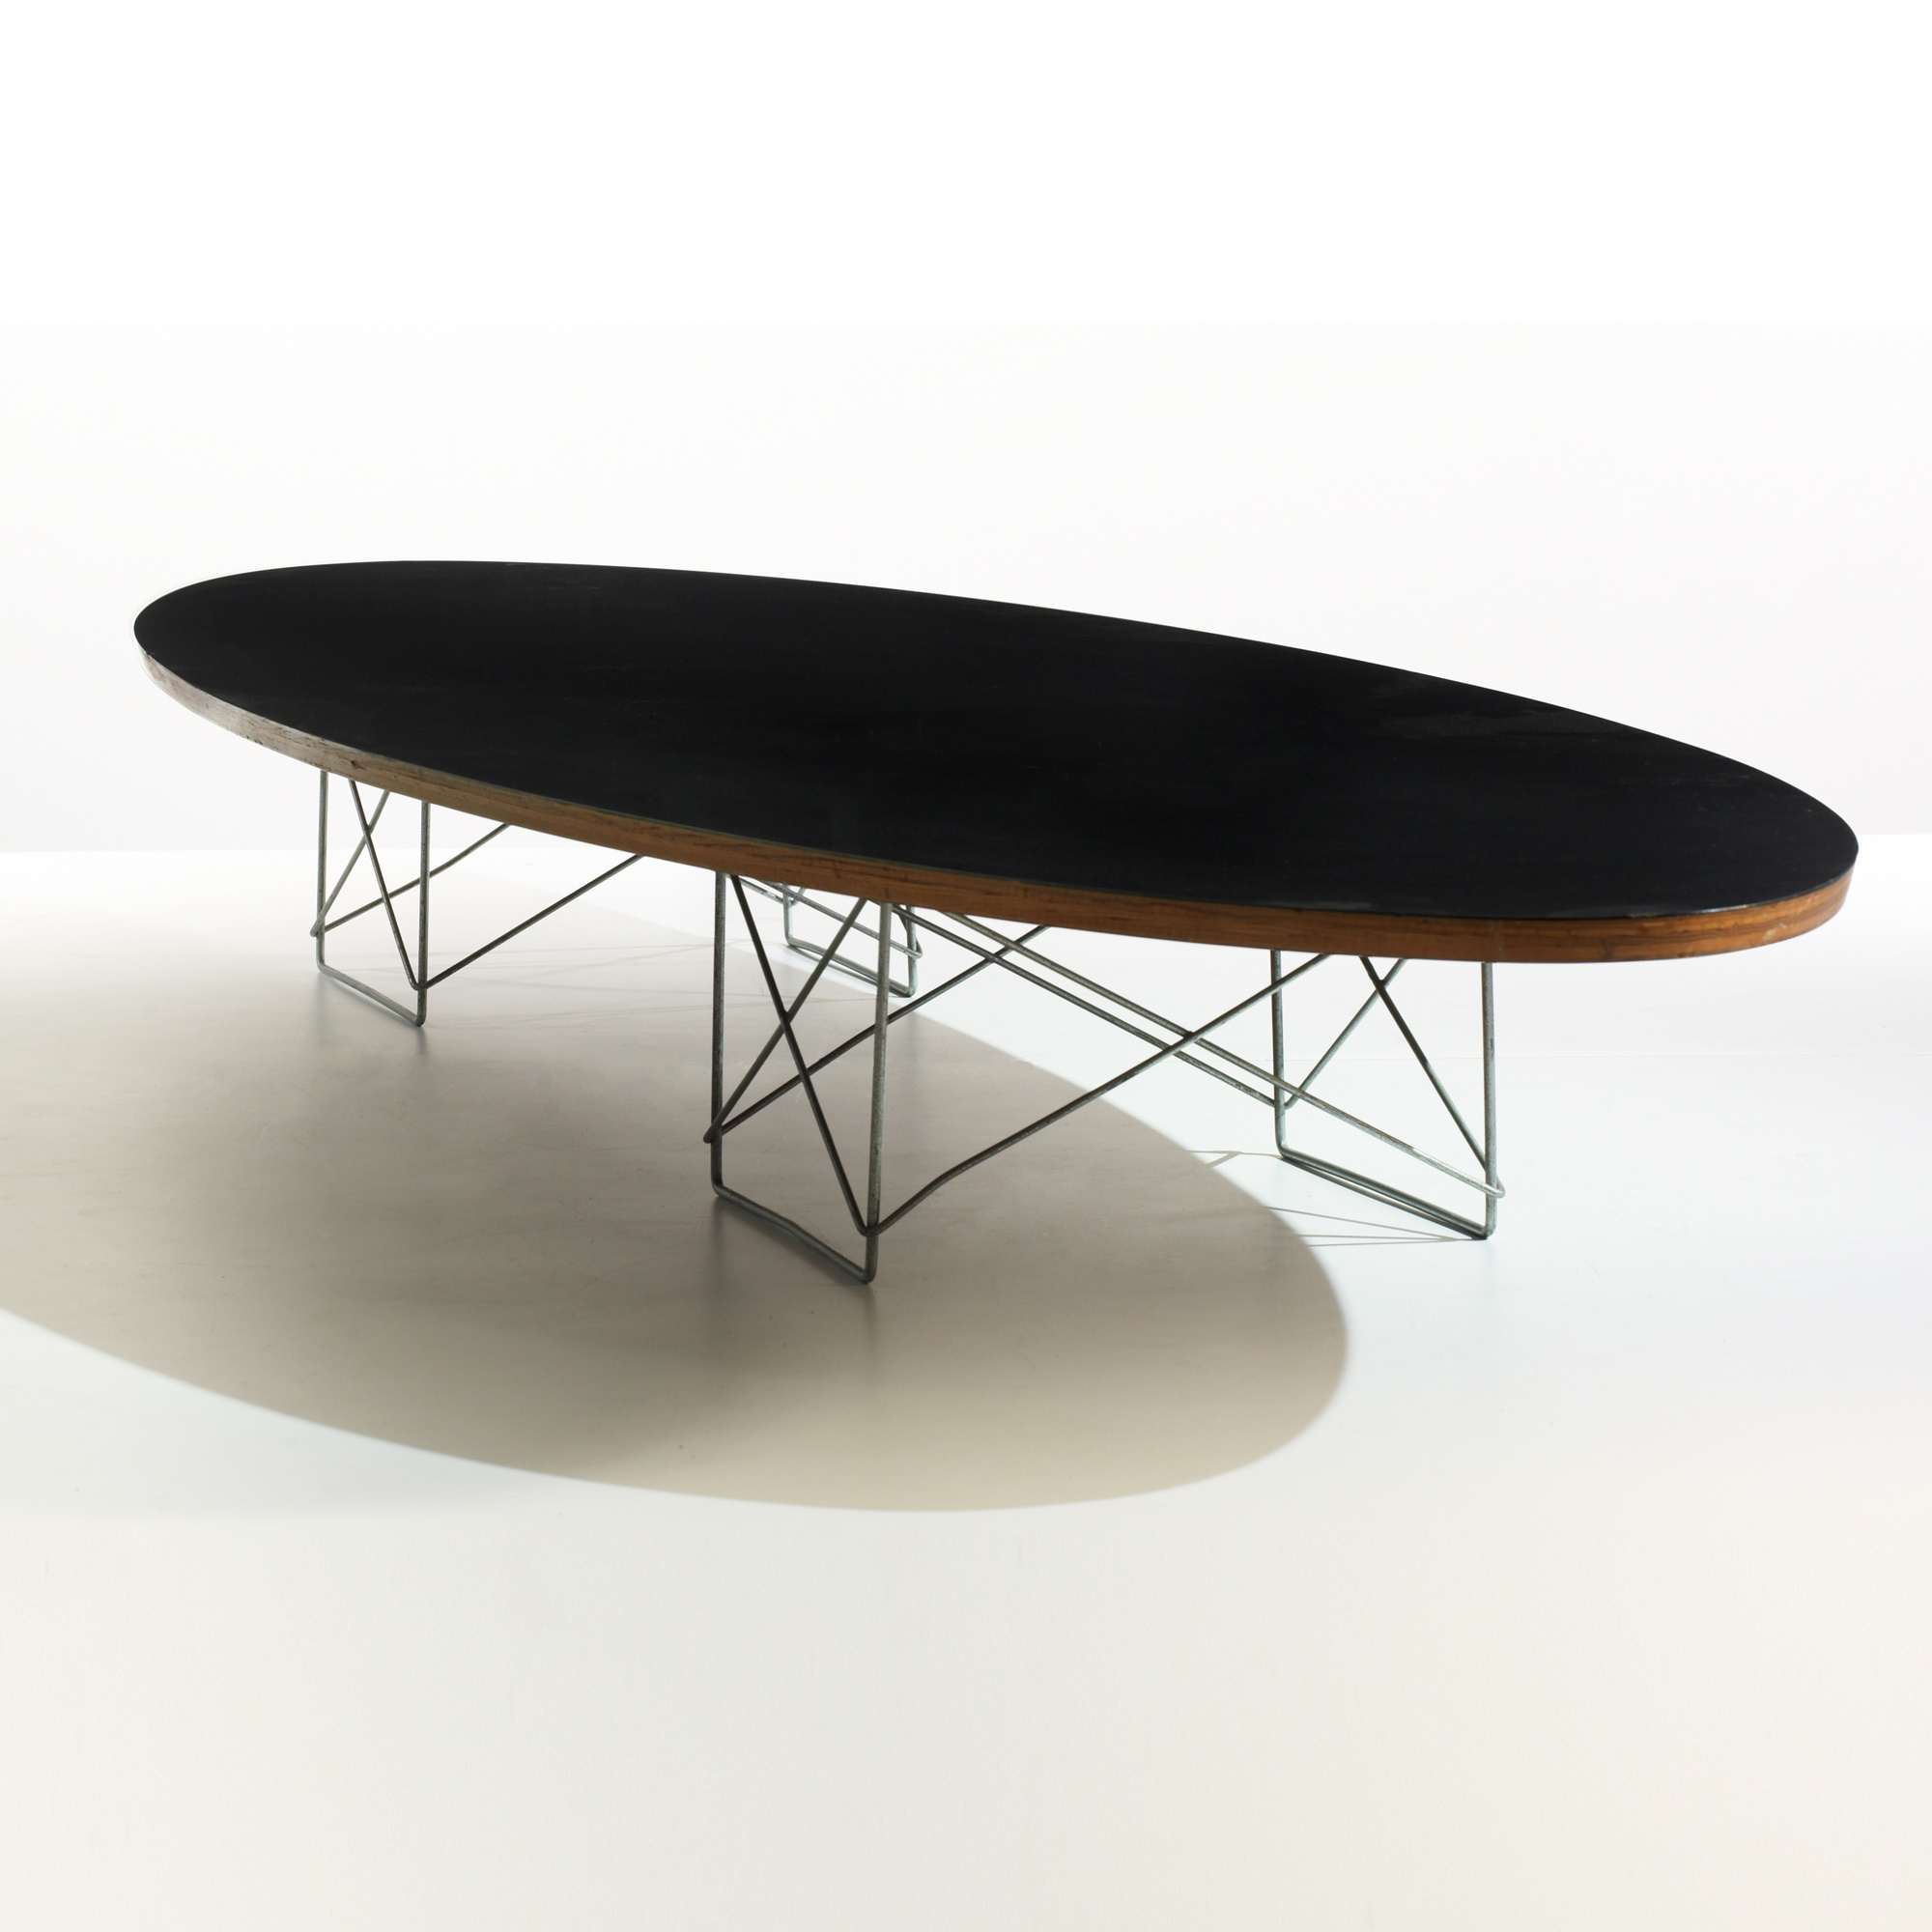 Eames Surfboard Coffee Table.116 Charles And Ray Eames Etr Surfboard Coffee Table Modern